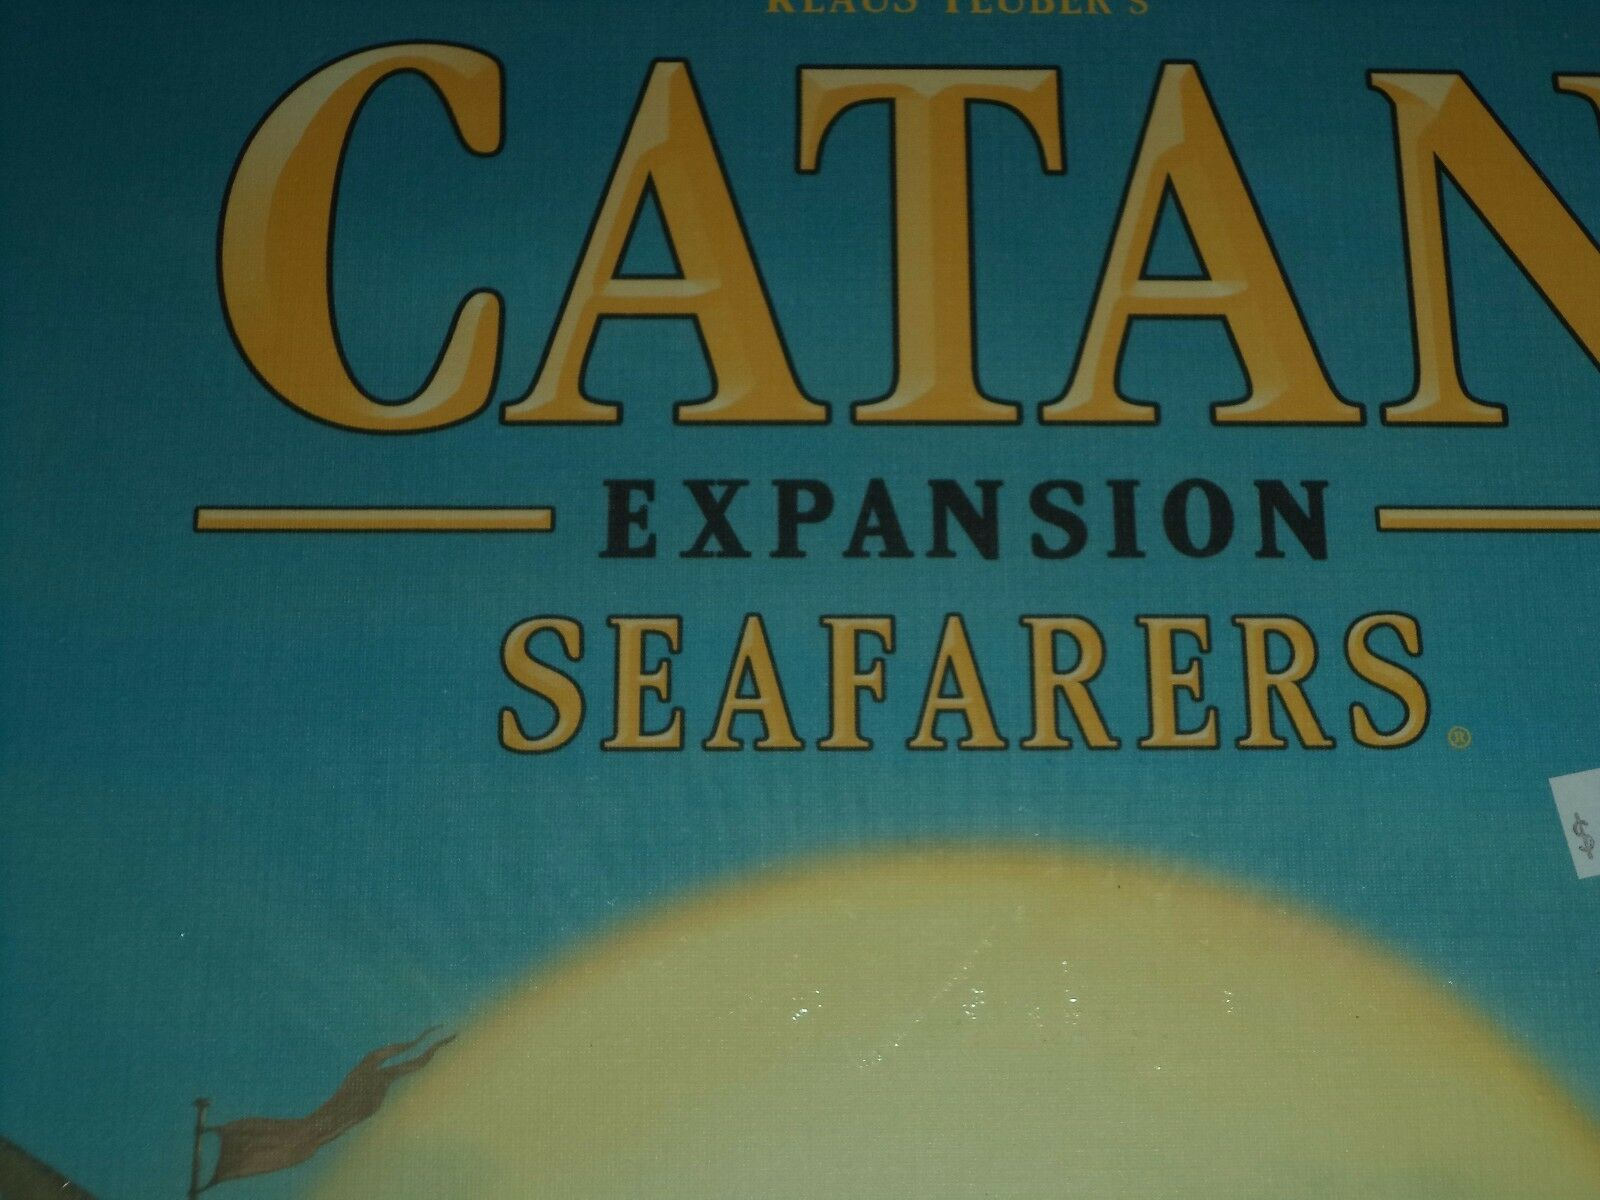 Catan Seafarers Expansion - Board Game New  Settlers of Catan &